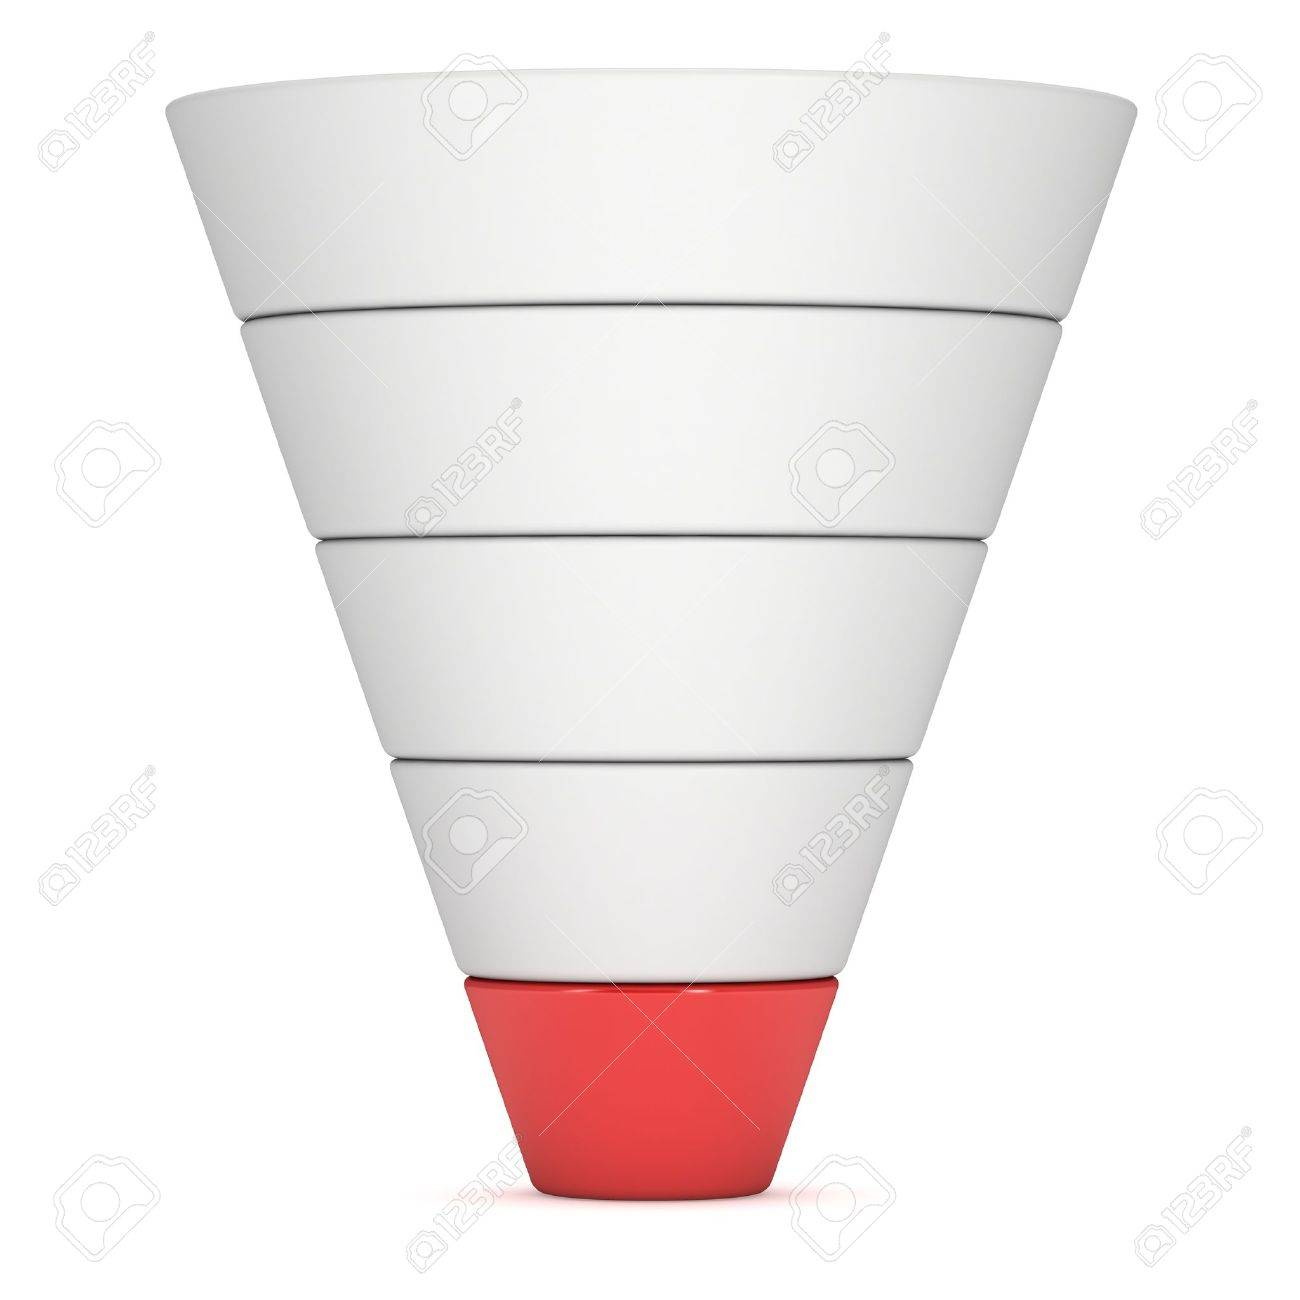 marketing funnel sales diagram 3d render isolated on white